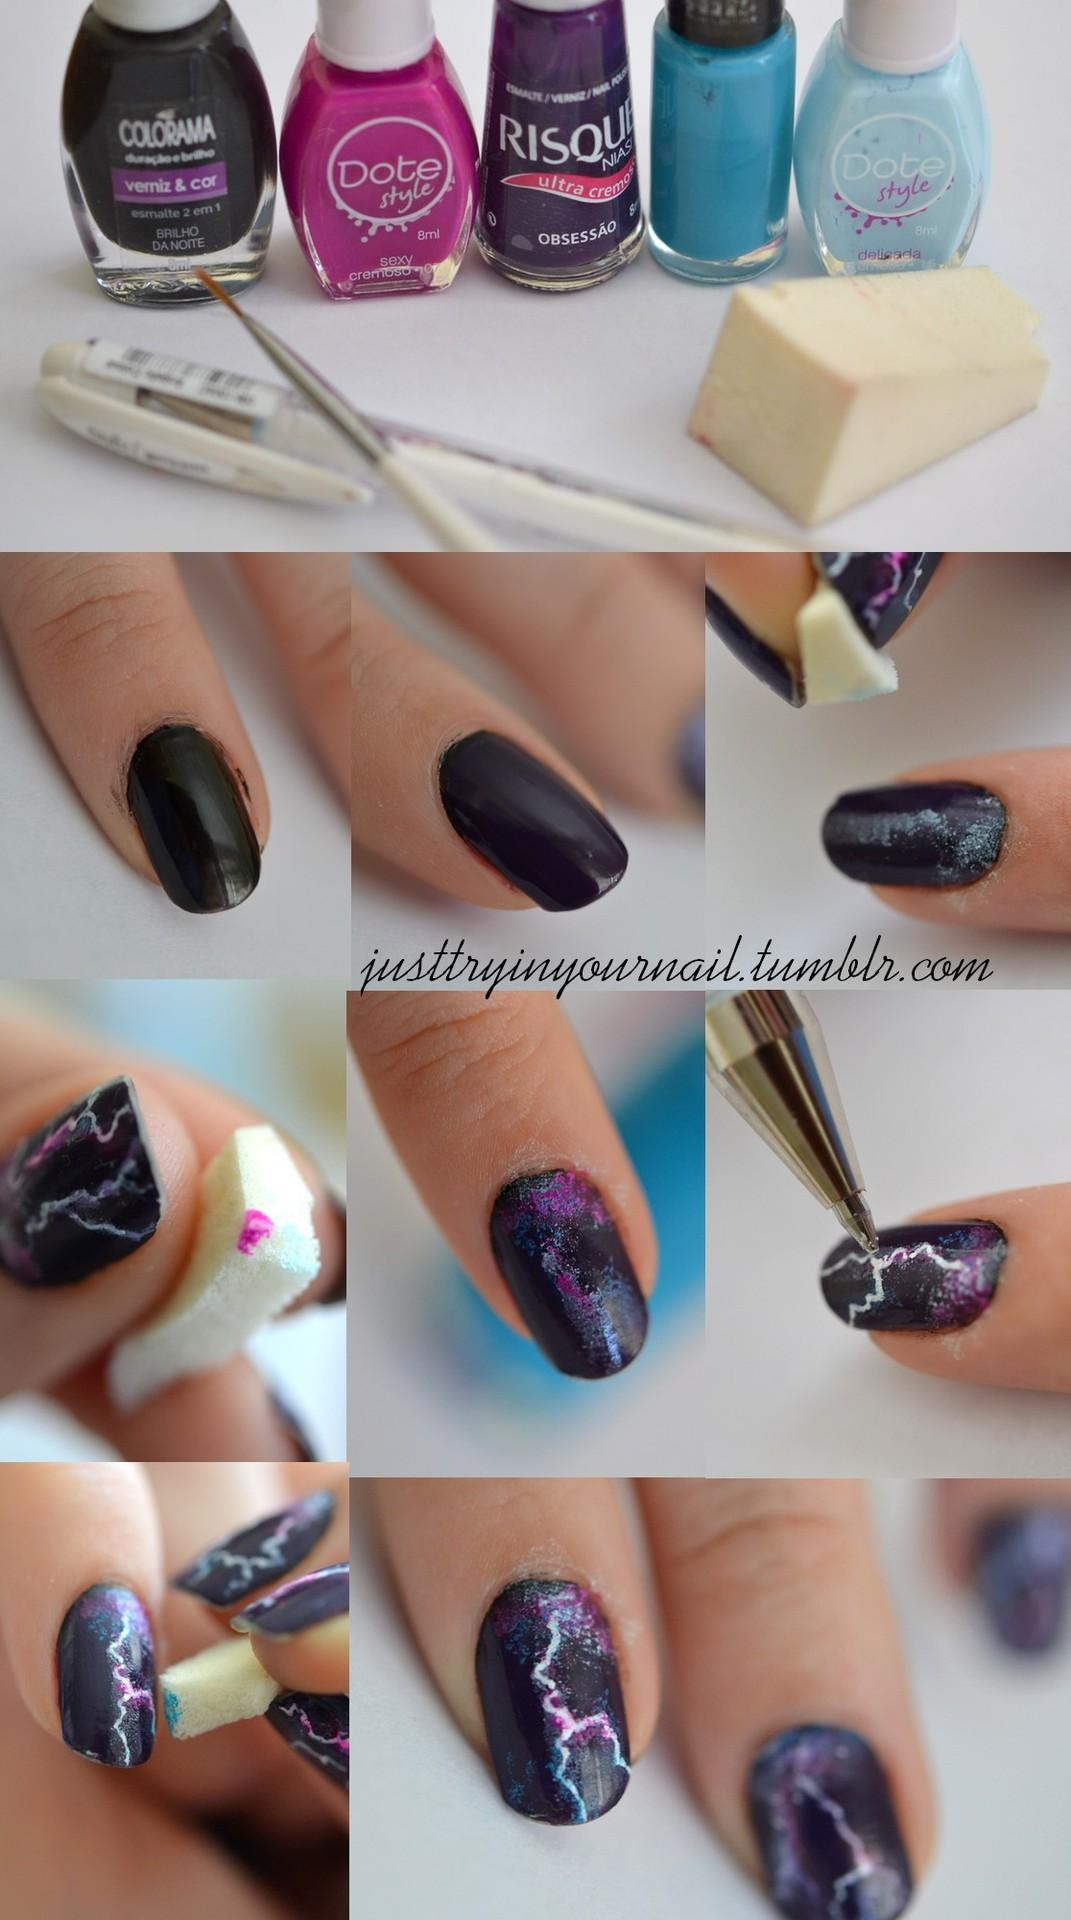 Diy lighting nail design do it yourself fashion tips diy fashion diy lighting nail design do it yourself fashion tips diy fashion projects solutioingenieria Gallery